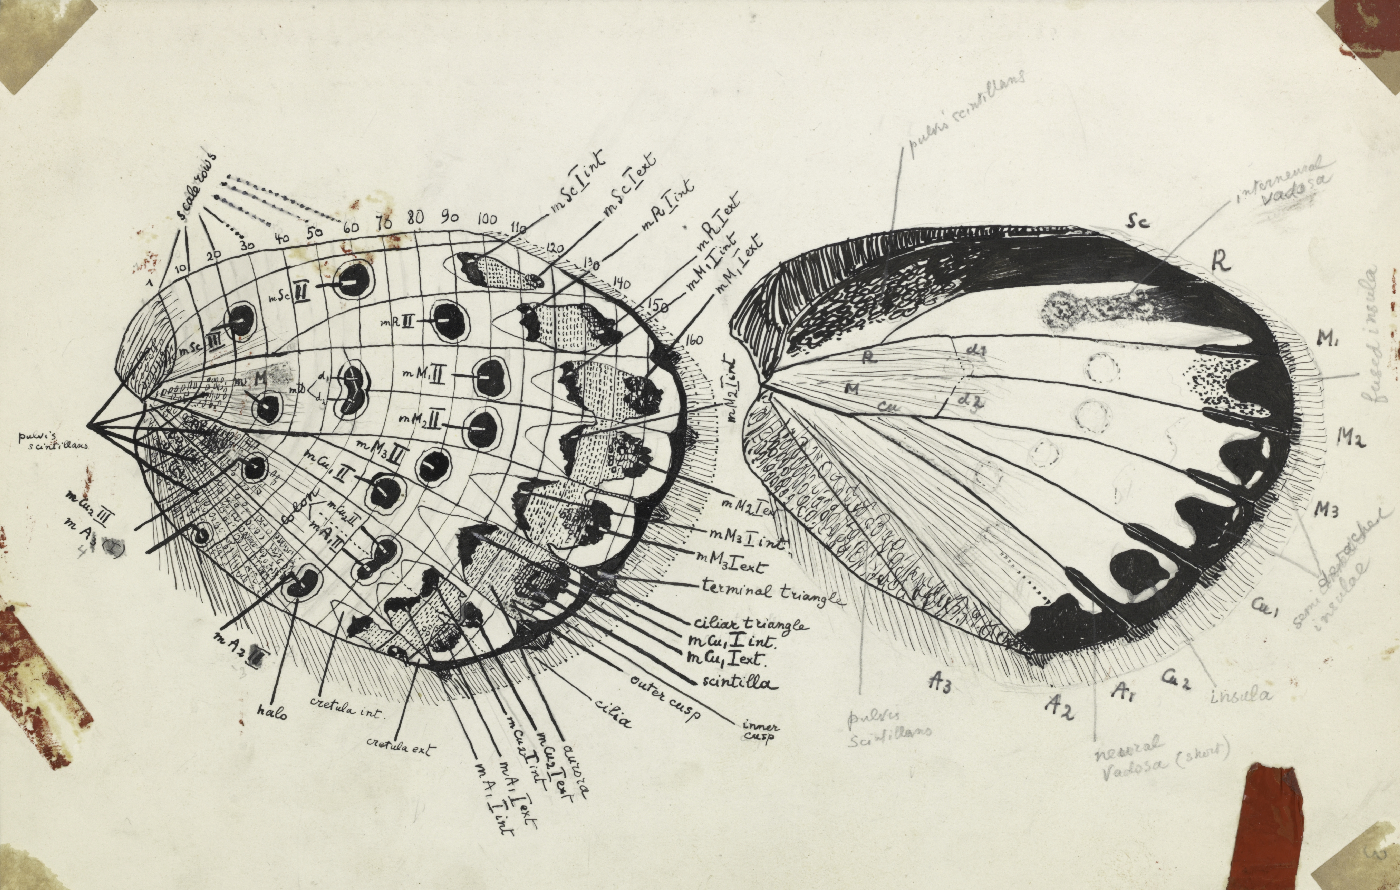 Figure 90 [A detailed wing schematic] (© Vladimir Nabokov. courtesy of the Vladimir Nabokov Archive at the Berg Collection, New York Public Library, used by permission of the Wylie Agency LLC)